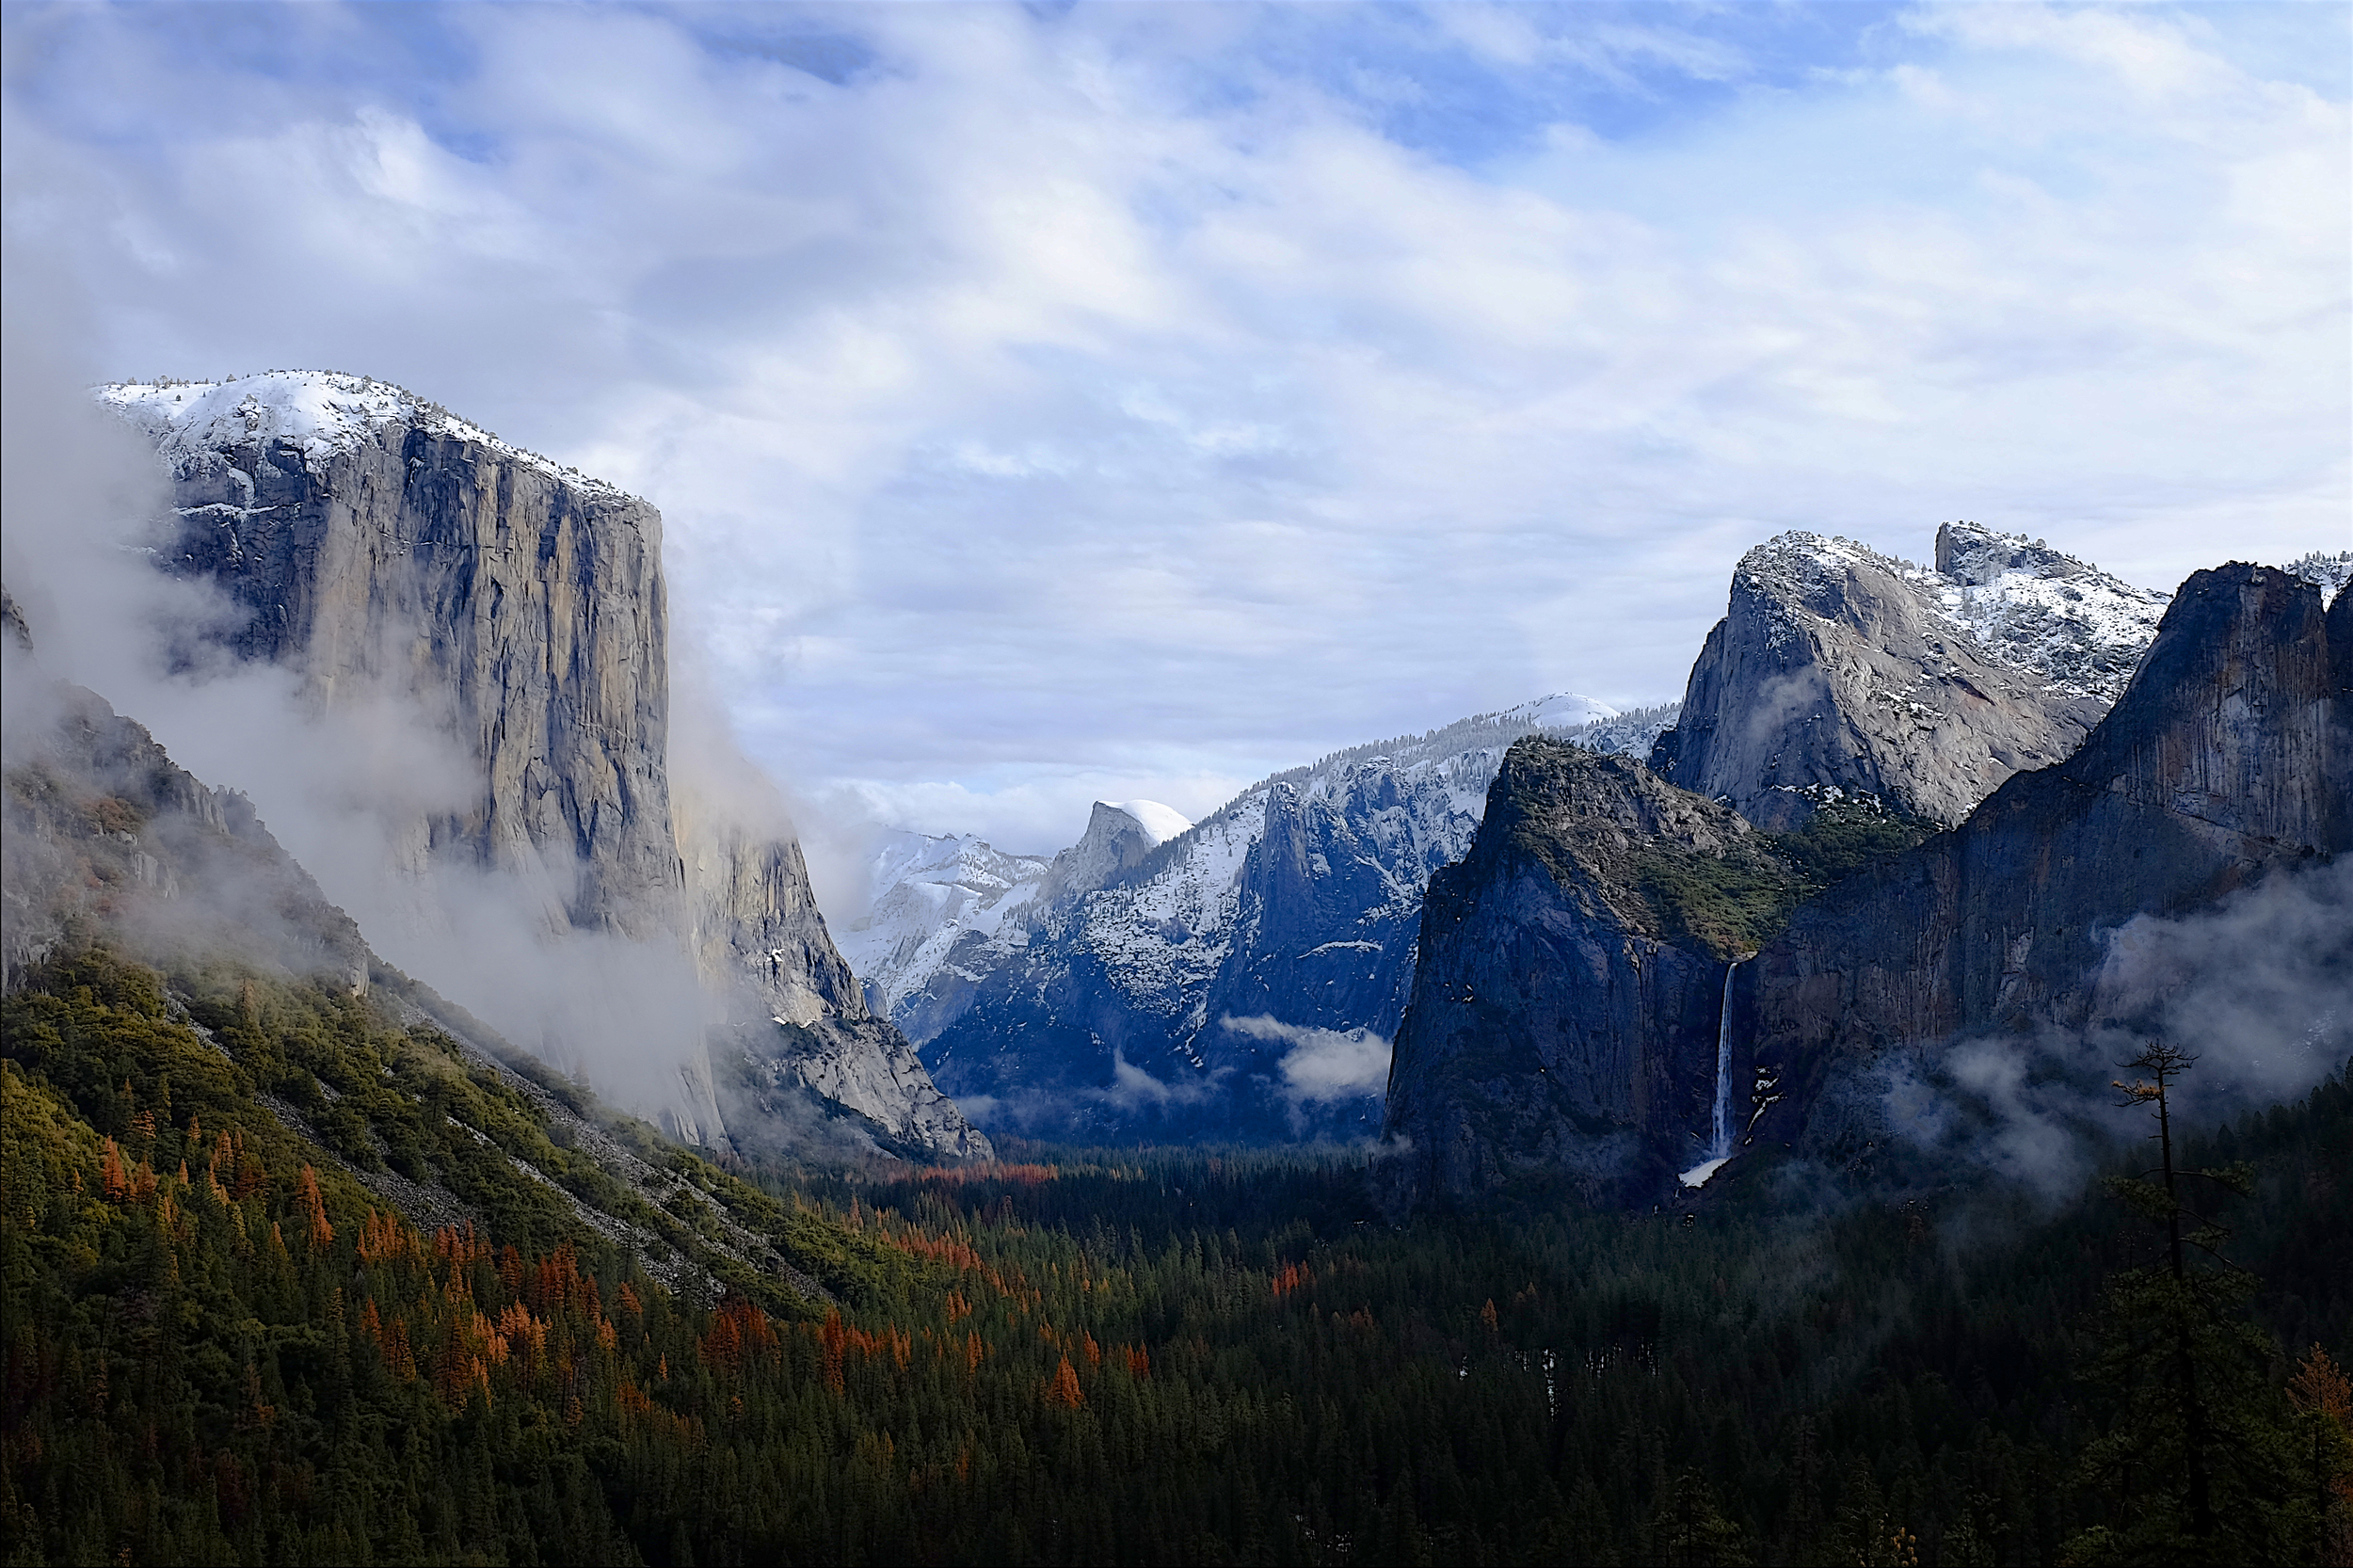 Fuji XT1, 18-55 f2.8-4.  Clearing clouds, Yosemite Valley from the tunnel view rest stop.